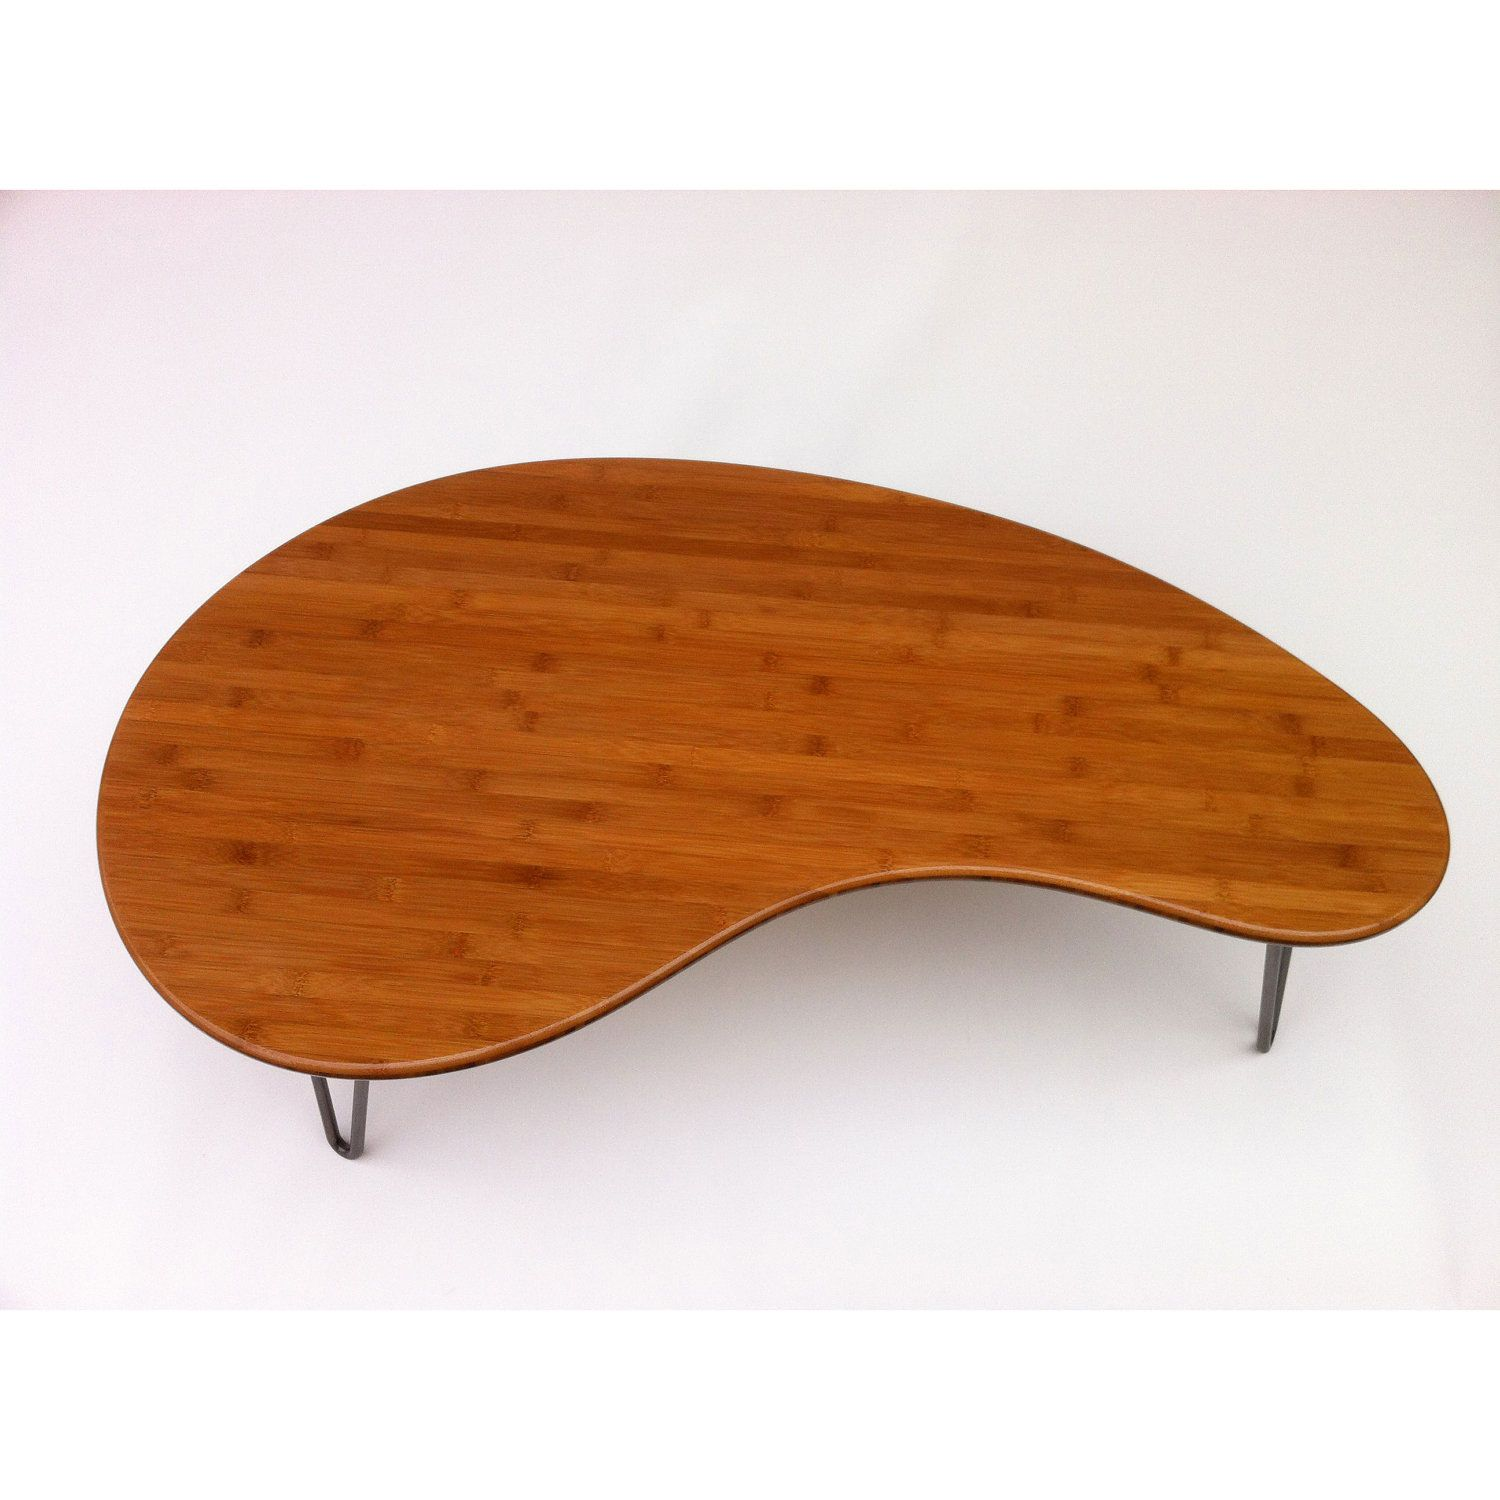 reminds me of a thrift store coffee table I had in Tucson and gave to a friend when I moved... Mid-Century Modern Electra Coffee Table